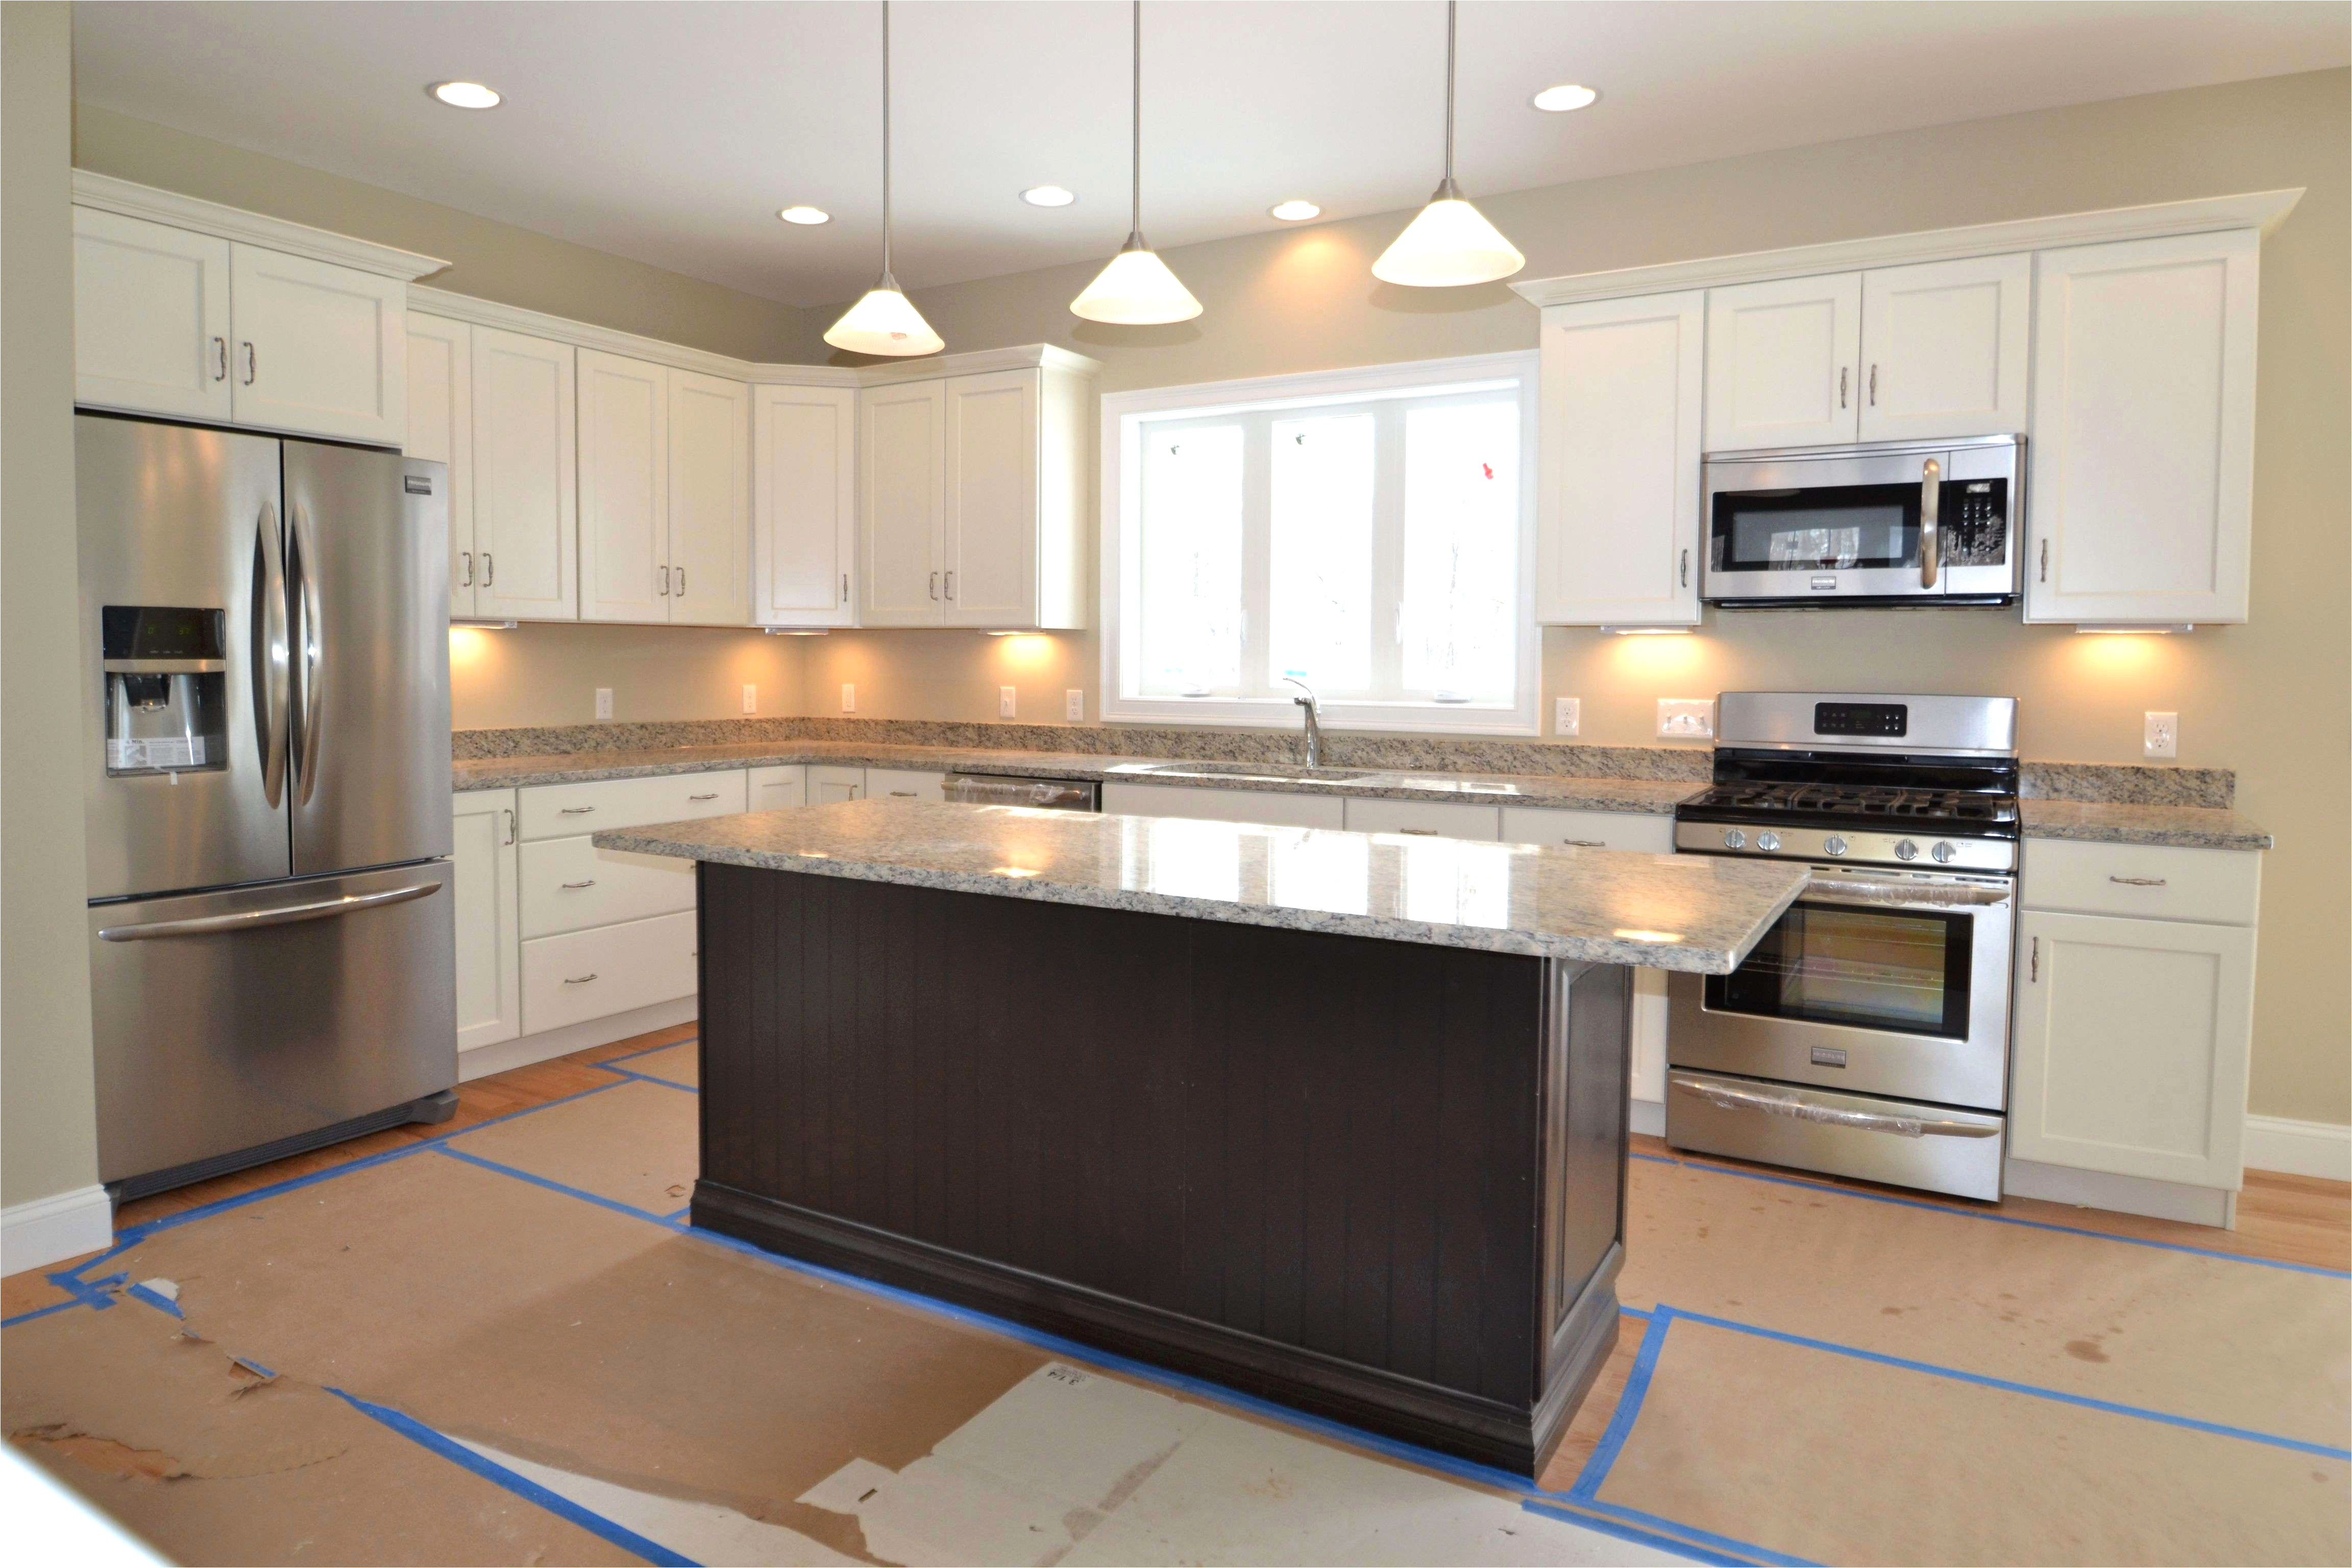 kitchen design inspiration fresh exclusive kitchen designs alluring kitchen cabinet 0d bright lights